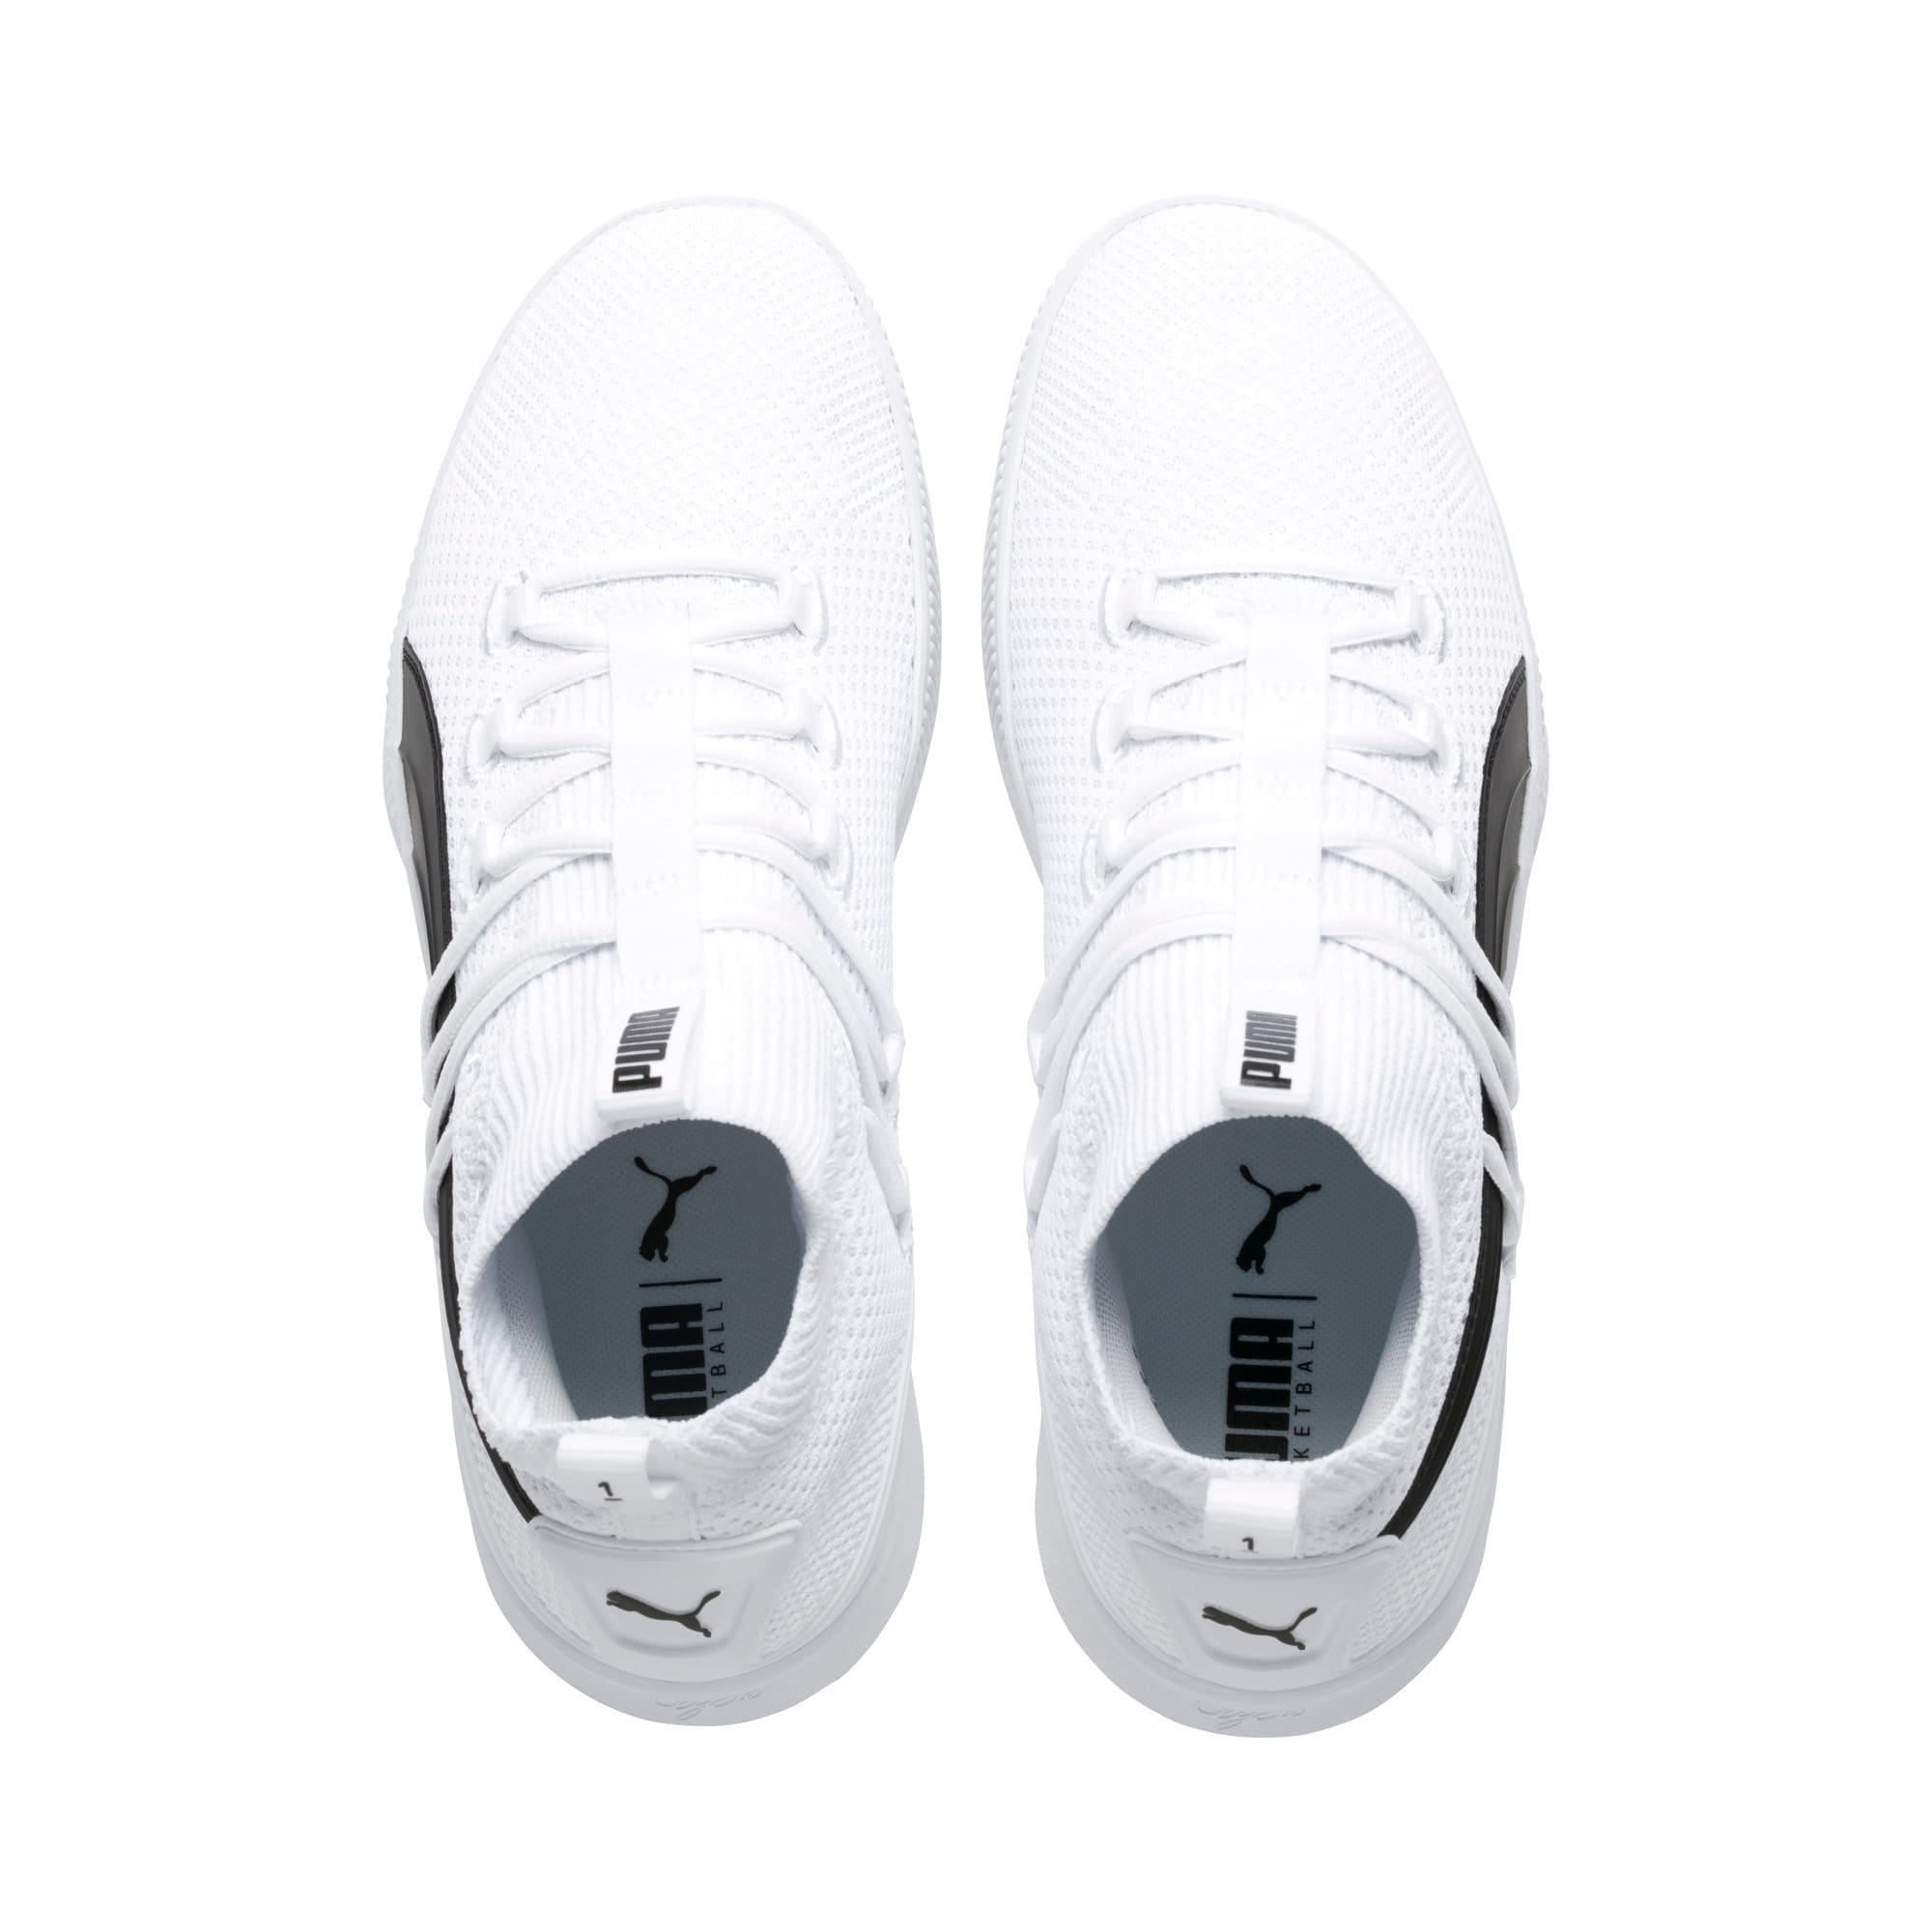 Thumbnail 6 of Clyde Court Core Basketball Shoes, Puma White, medium